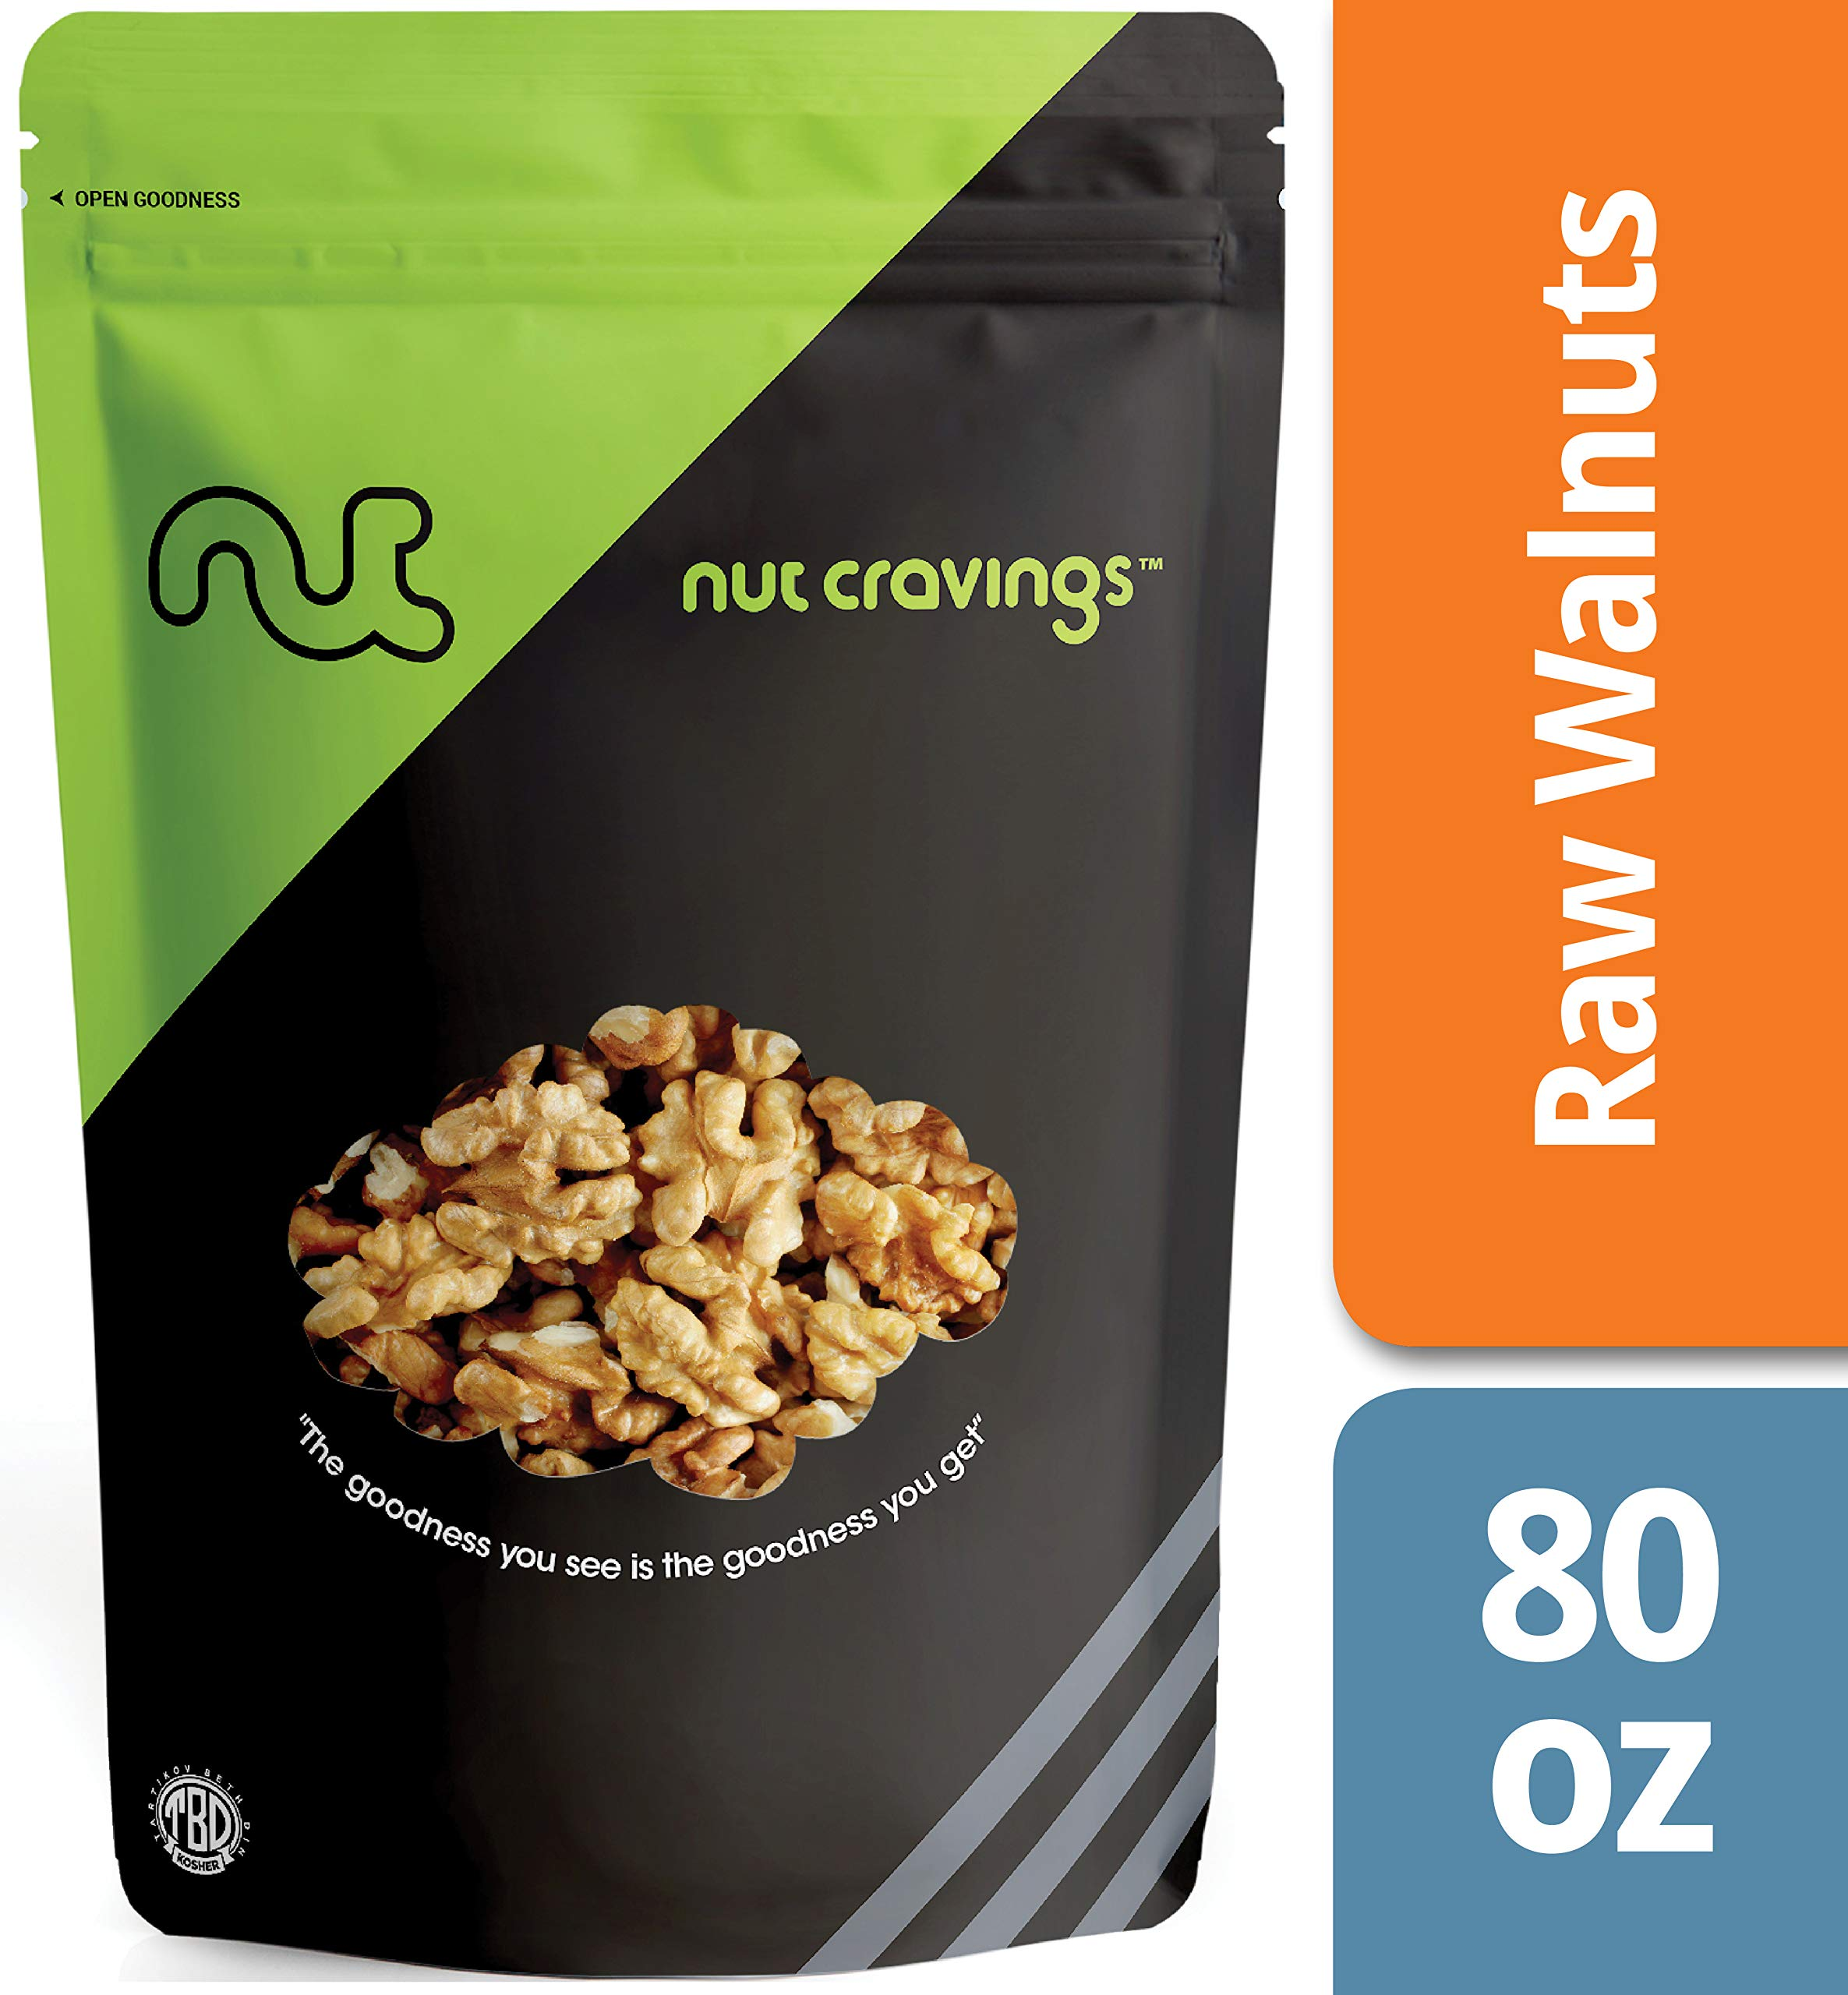 Nut Cravings California Raw Walnuts (5 Pounds) - 100% All Natural Shelled Halves and Pieces - 80 Ounce